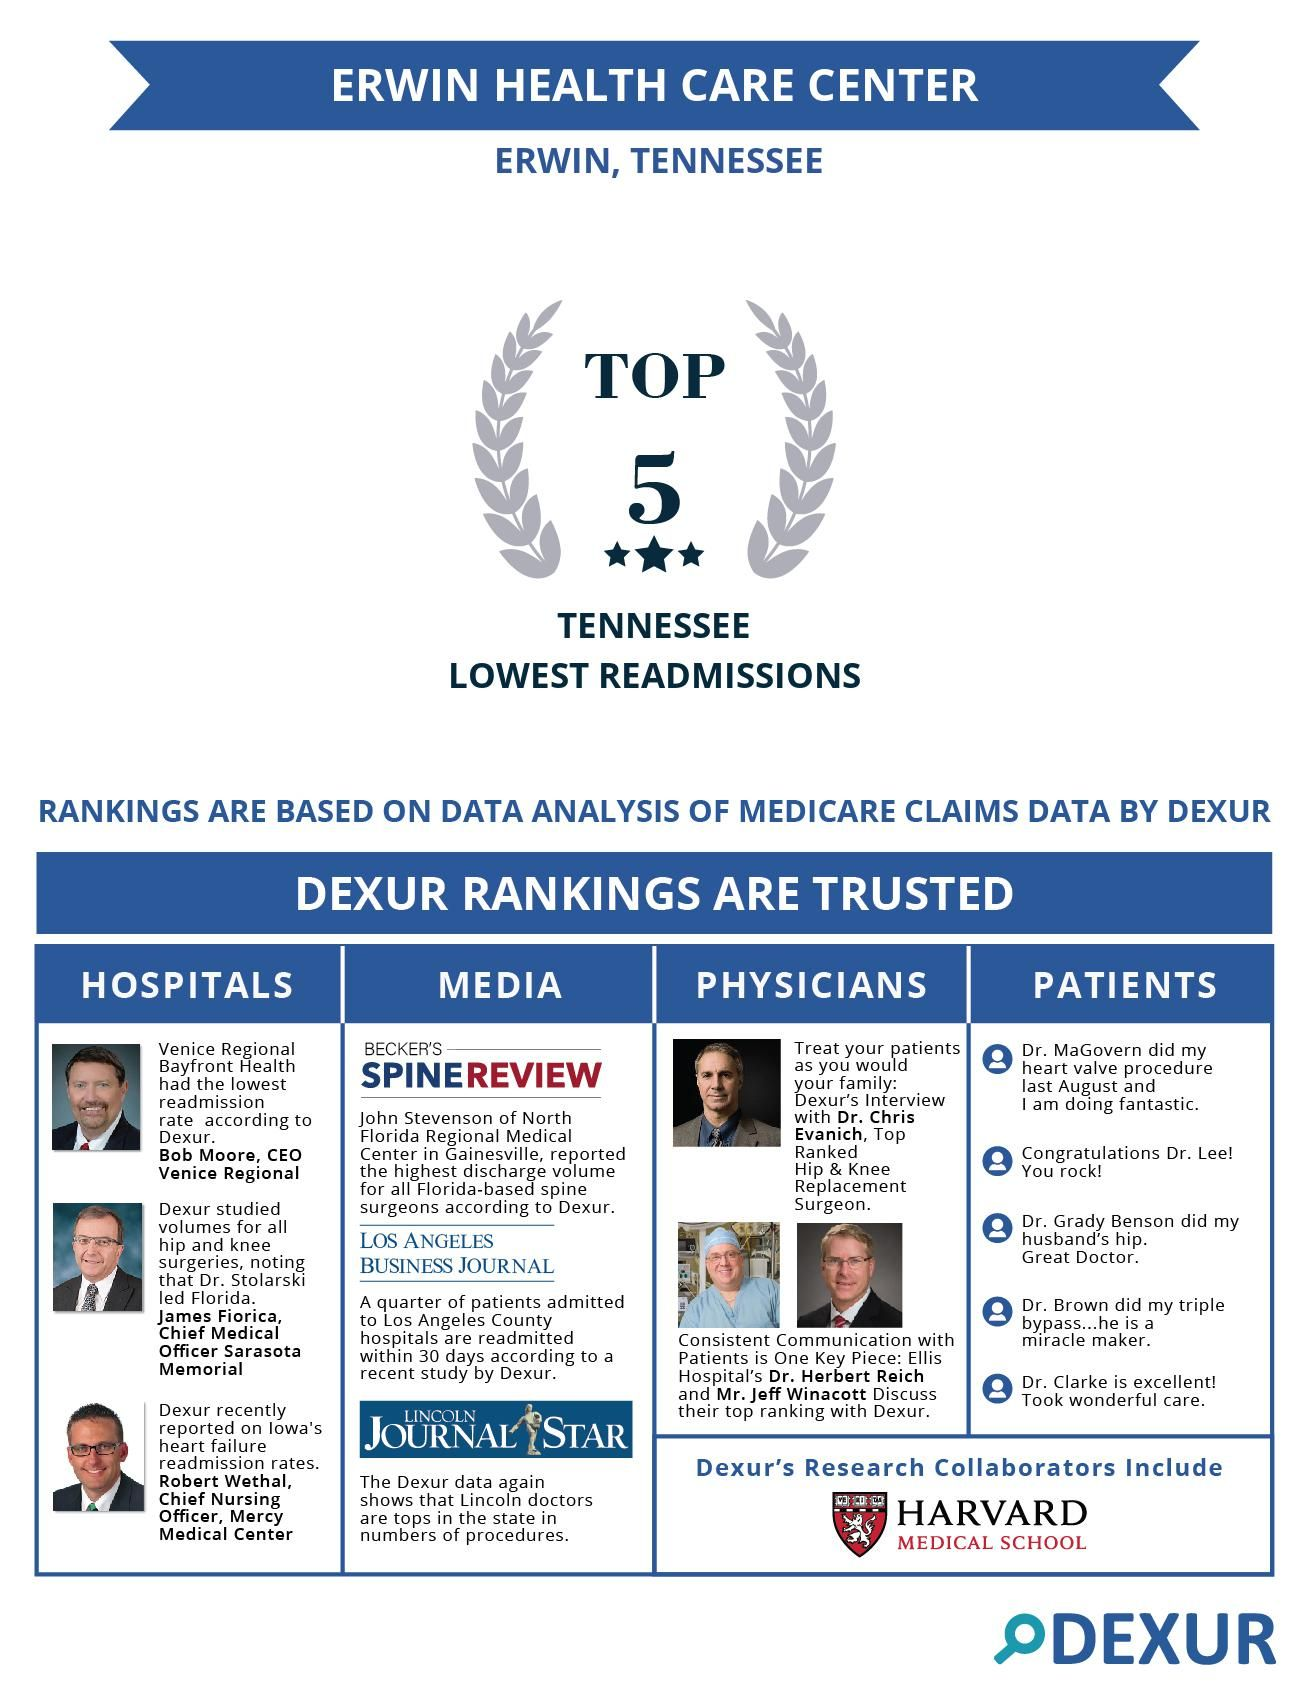 Erwin Health Care Center is among the top ranked Nursing